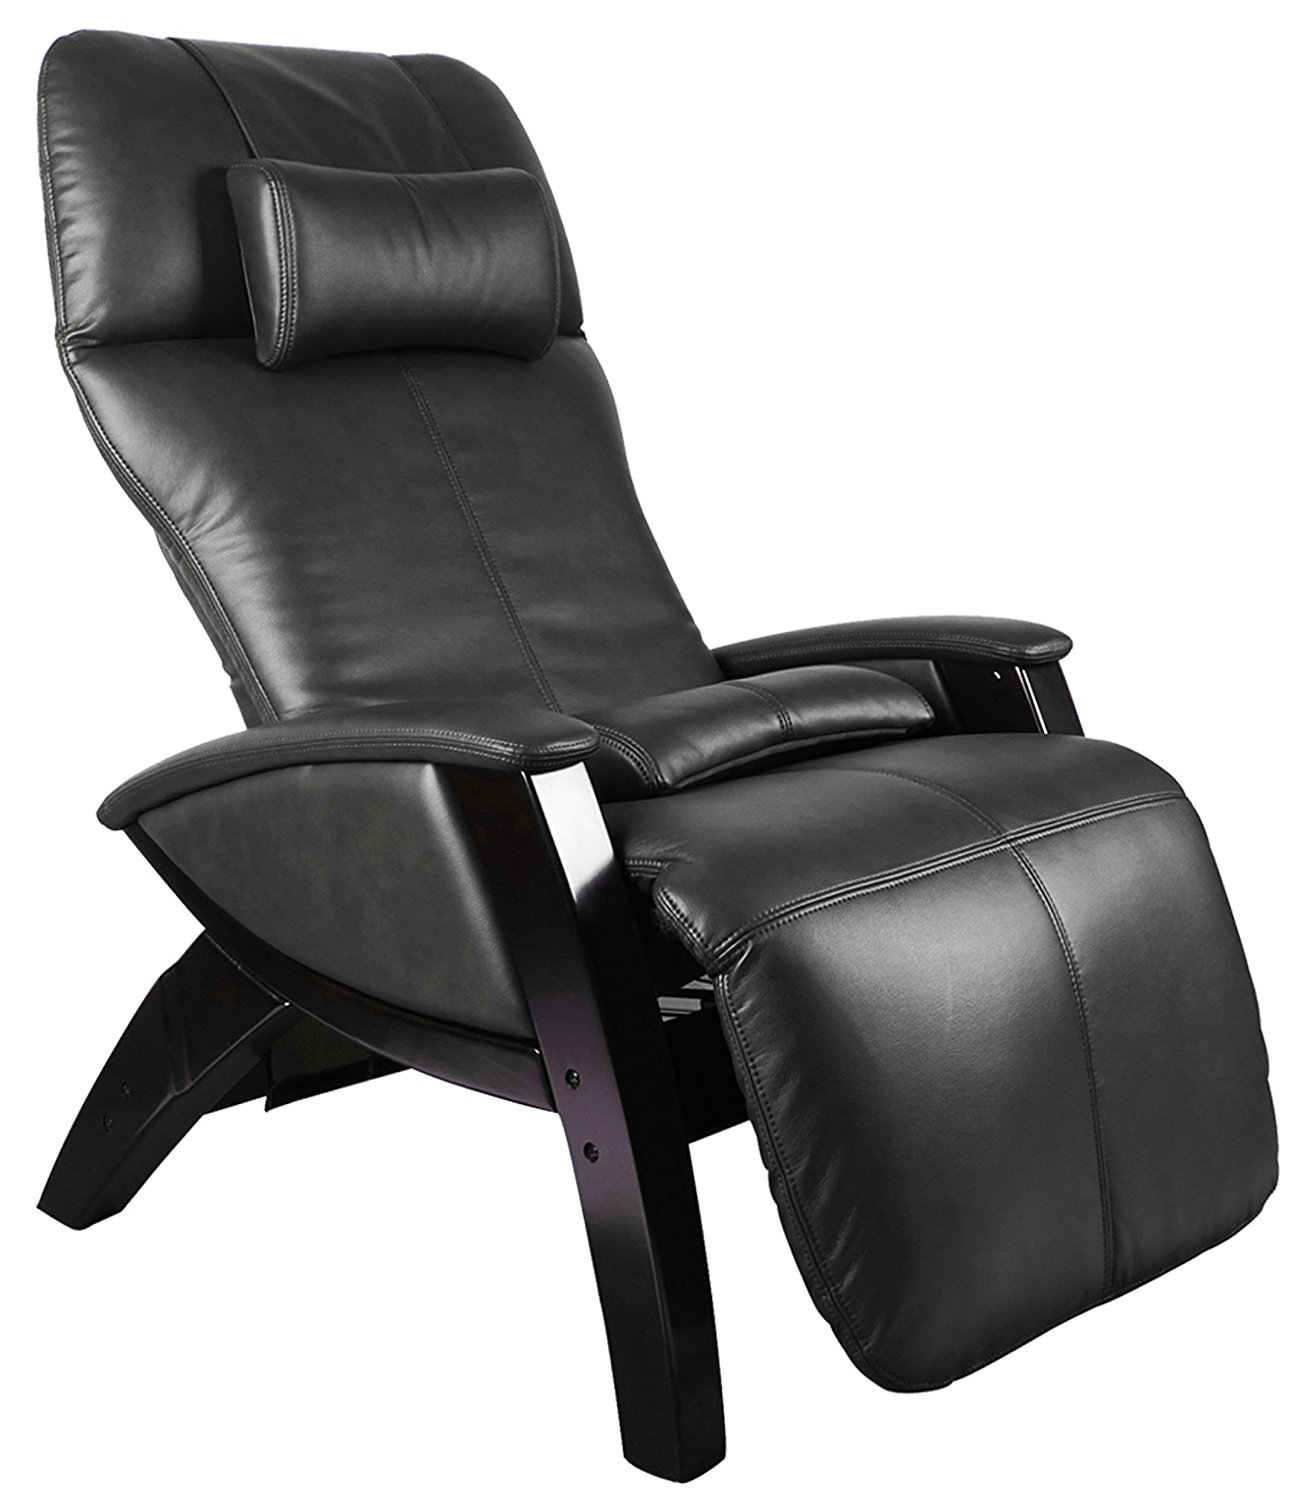 Cheap Recliner Zero Gravity Find Recliner Zero Gravity Deals On Line At Alibaba Com